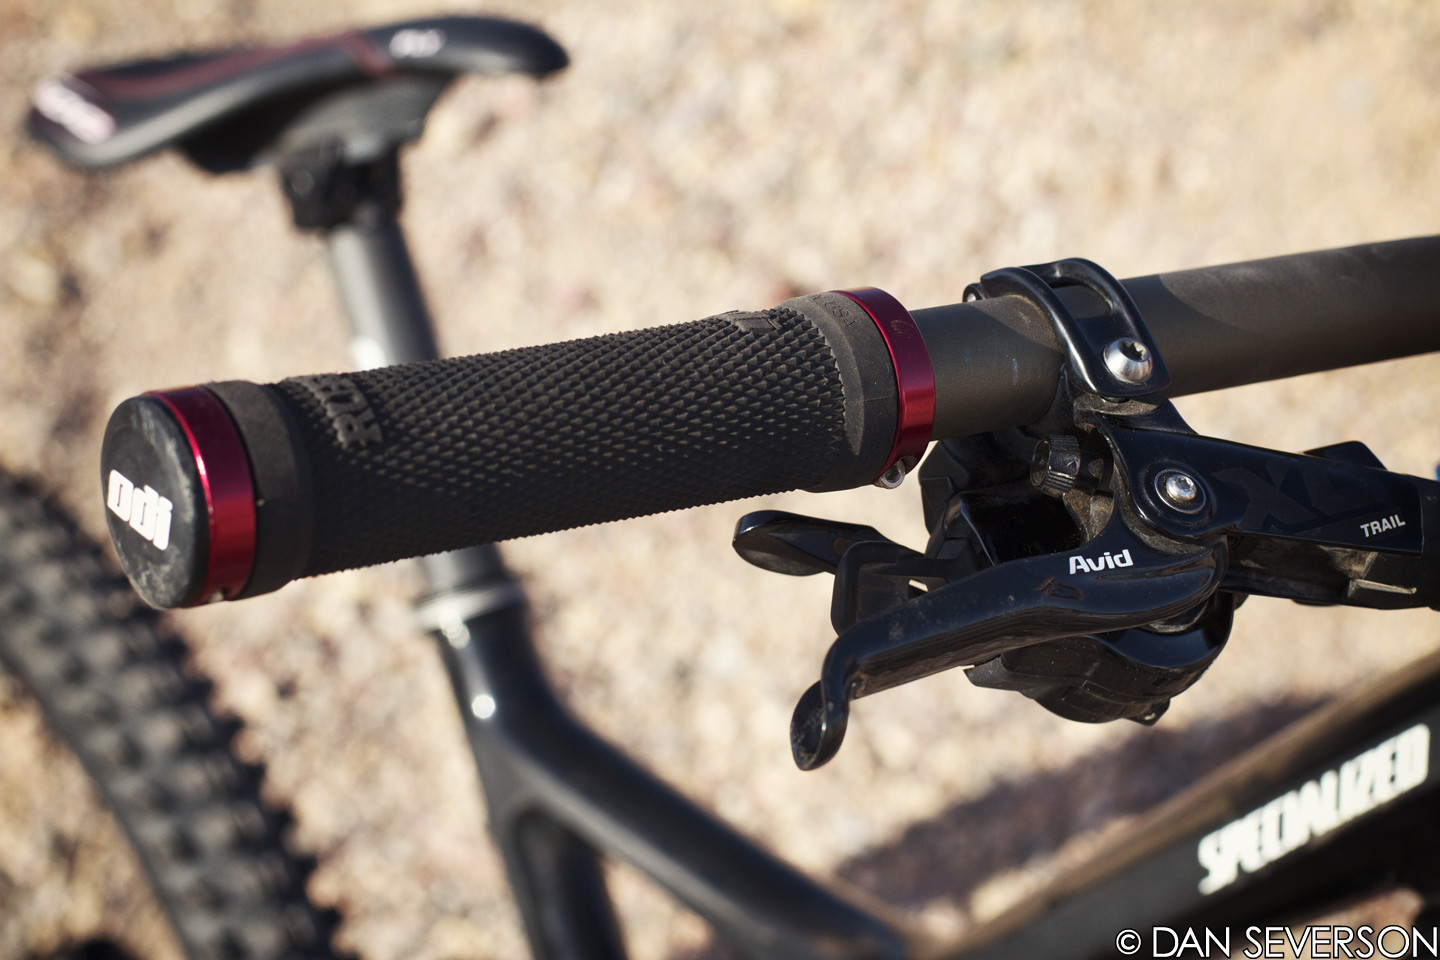 ODI Ruffian Lock-on Grips - Aaron Gwin's 2013 Specialized S-Works Demo 8 Race Bike - Mountain Biking Pictures - Vital MTB